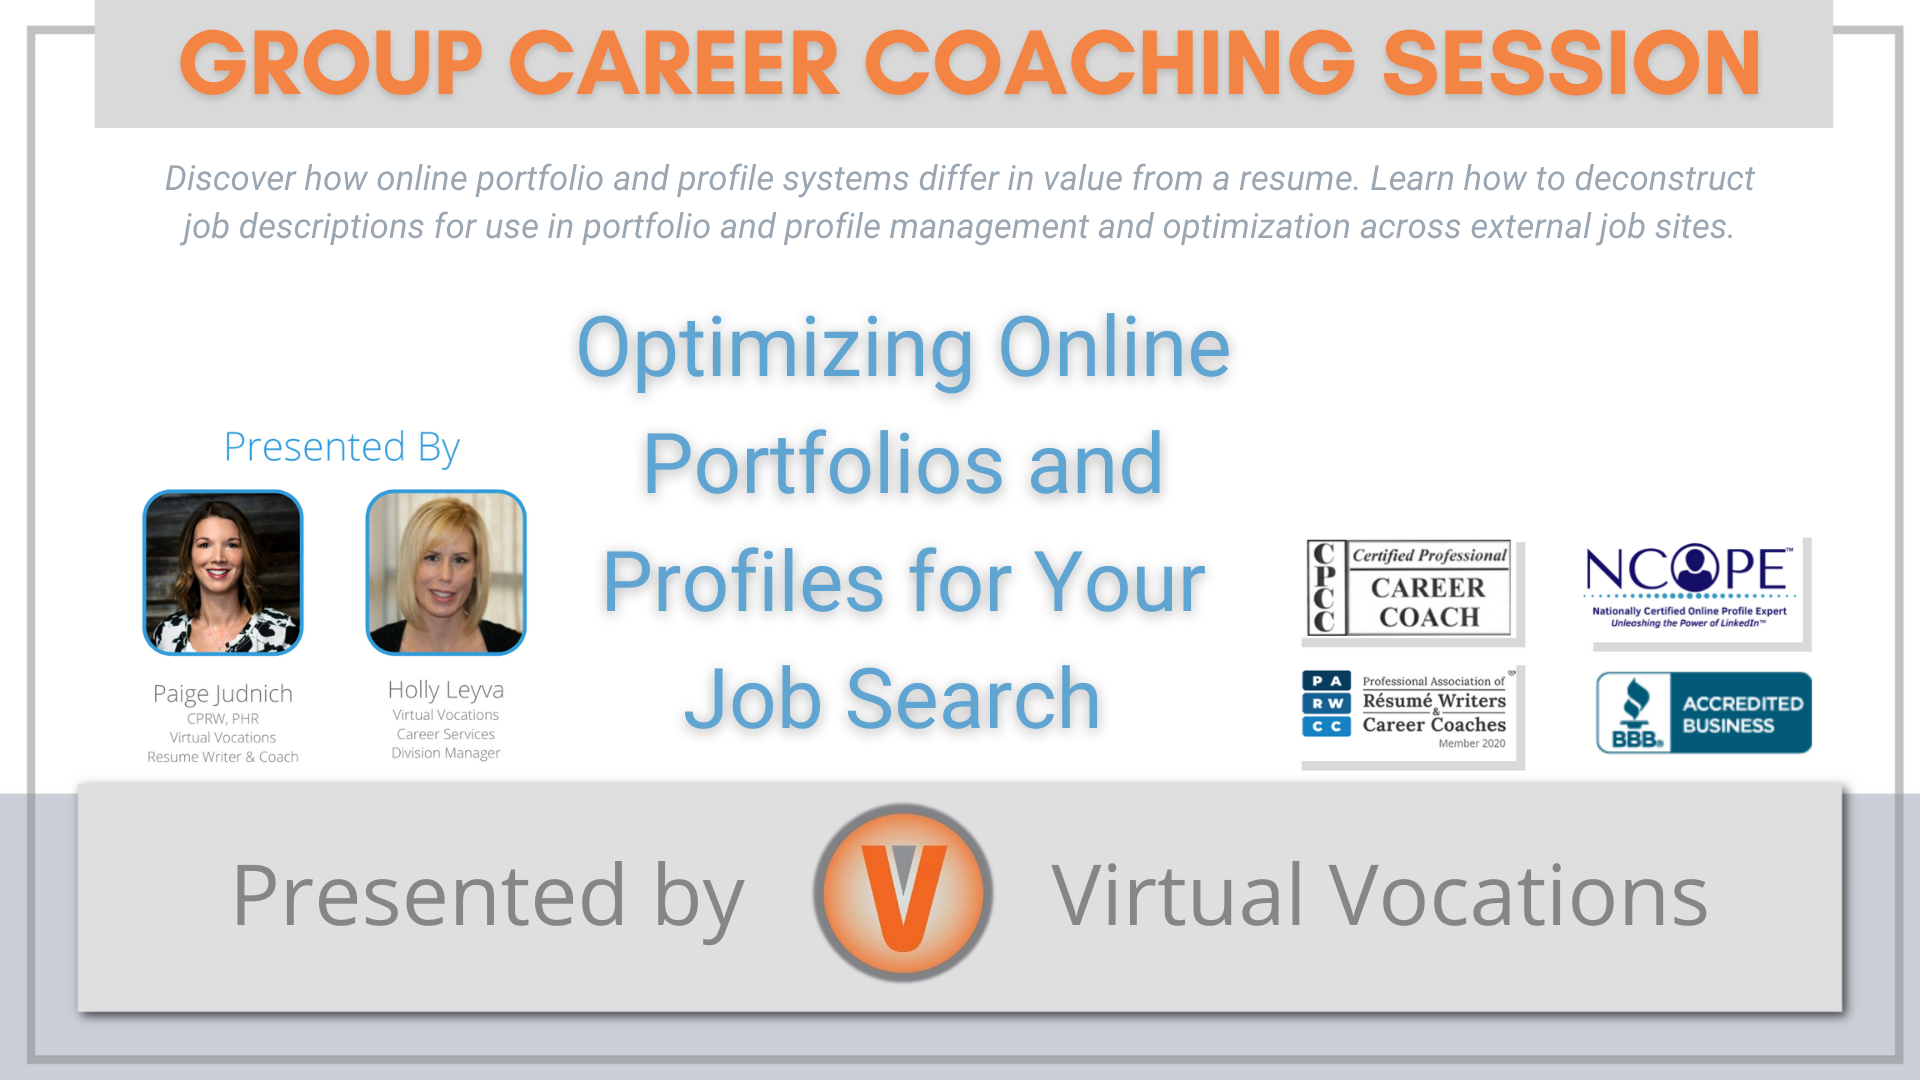 Optimizing Online Portfolios and Profiles for Your Job Search